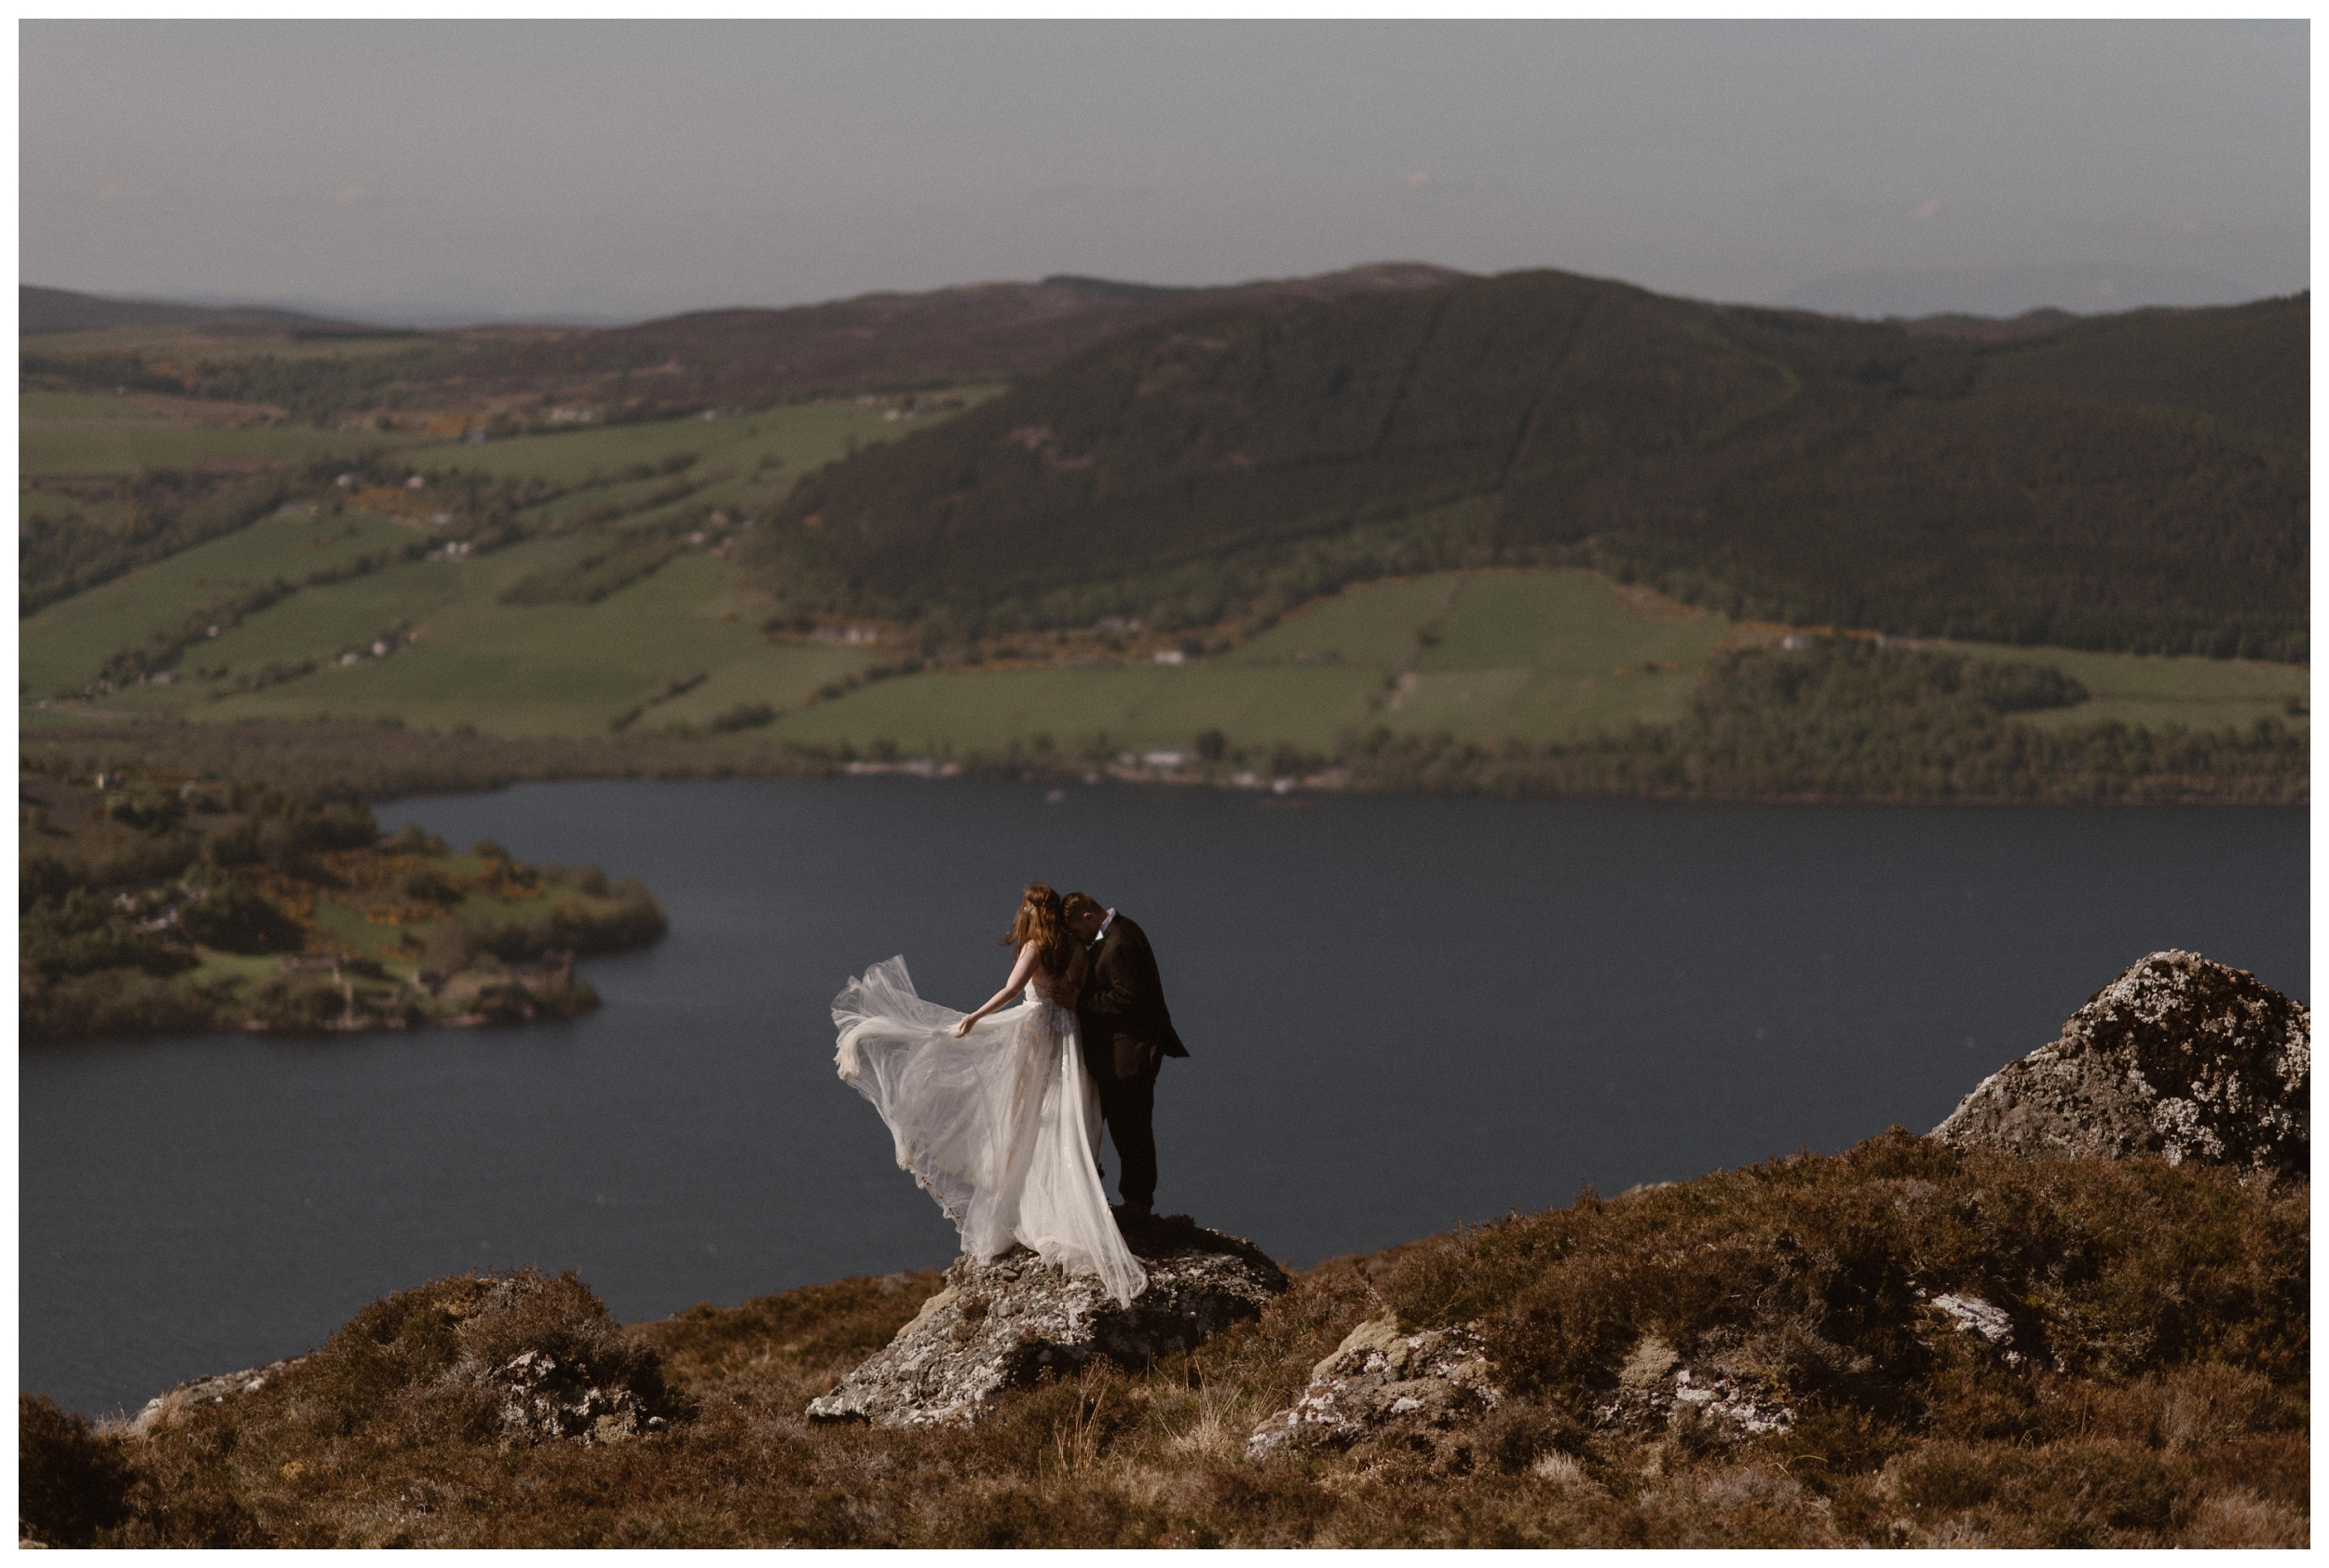 The rolling hills of the Scottish Highlands and the ruins of Urquhart Castle are behind Elissa and Daniel as they embrace following their destination wedding elopement. Photo by Maddie Mae, Adventure Instead.